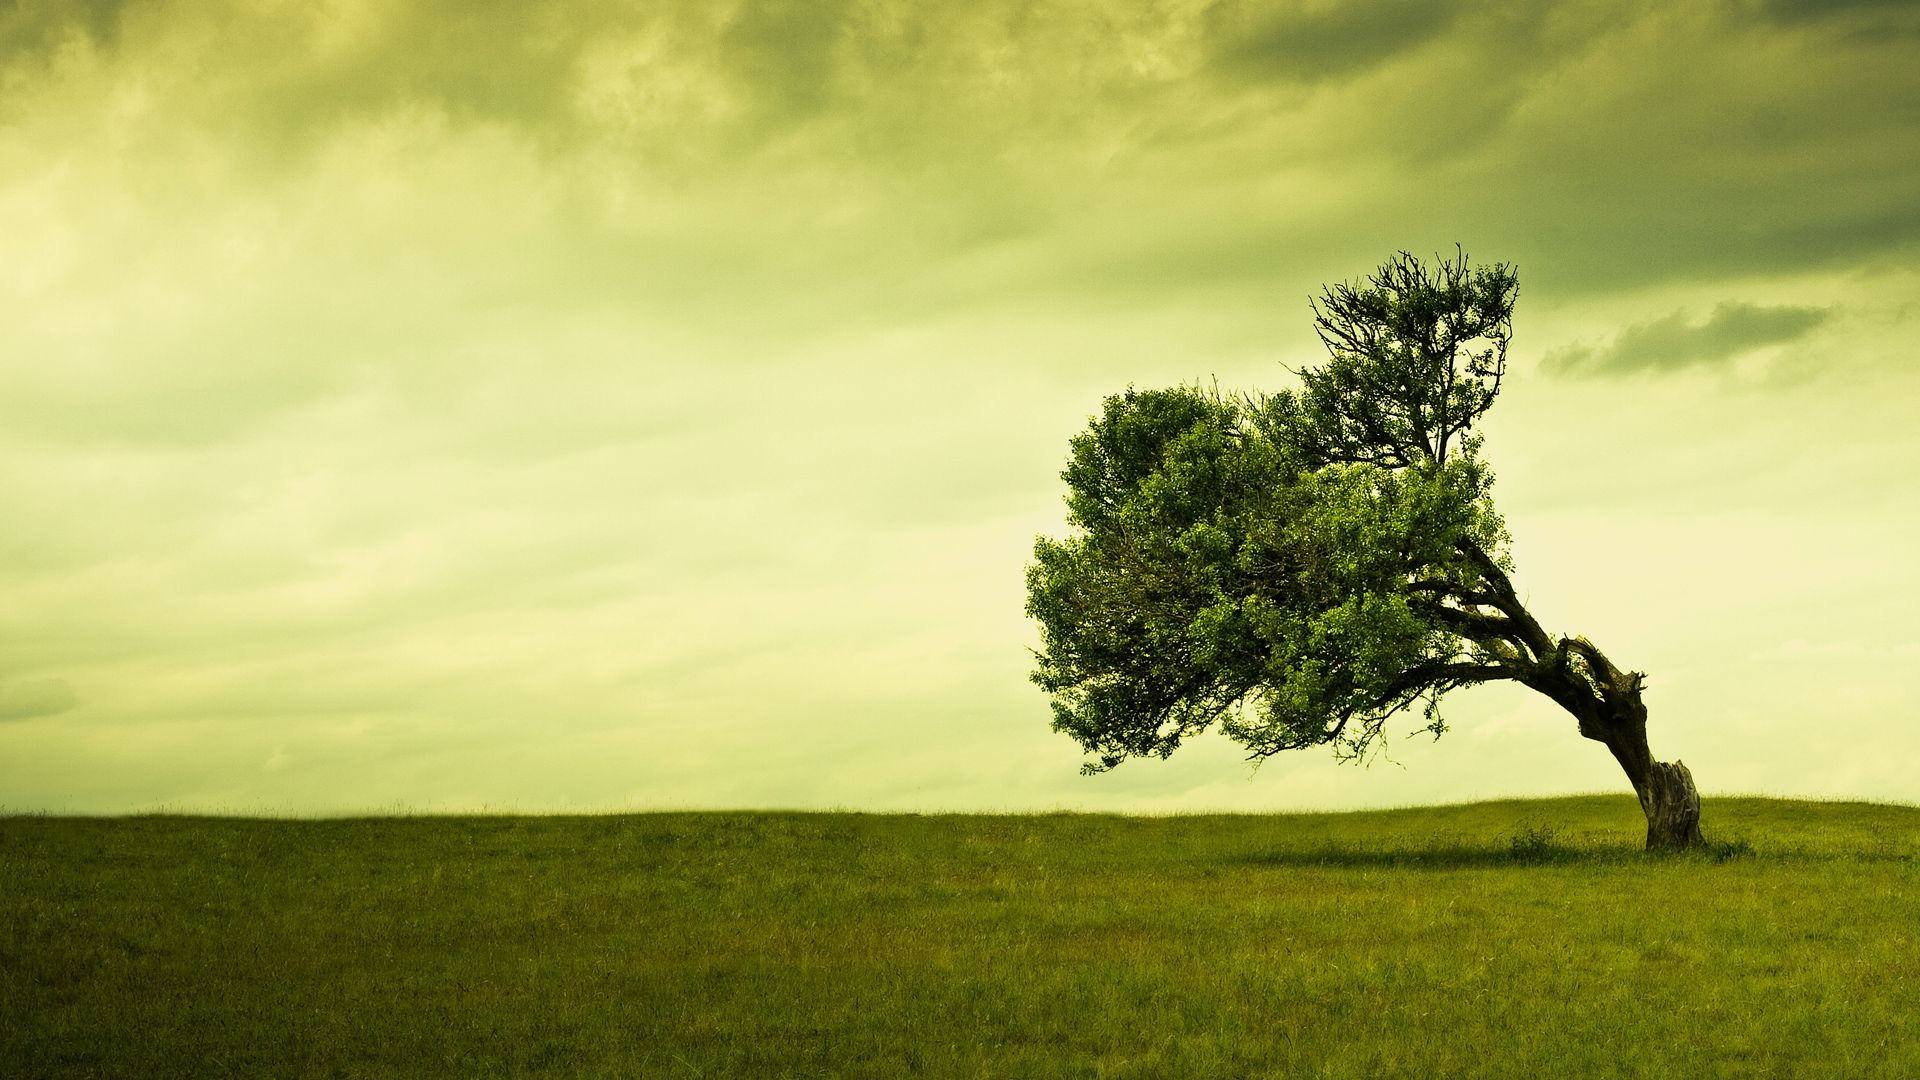 Widescreen abstract backgrounds wallpaper hd 1920x1080 2323 - Tree Bended By The Wind Green Grass Free Hd Wallpaper